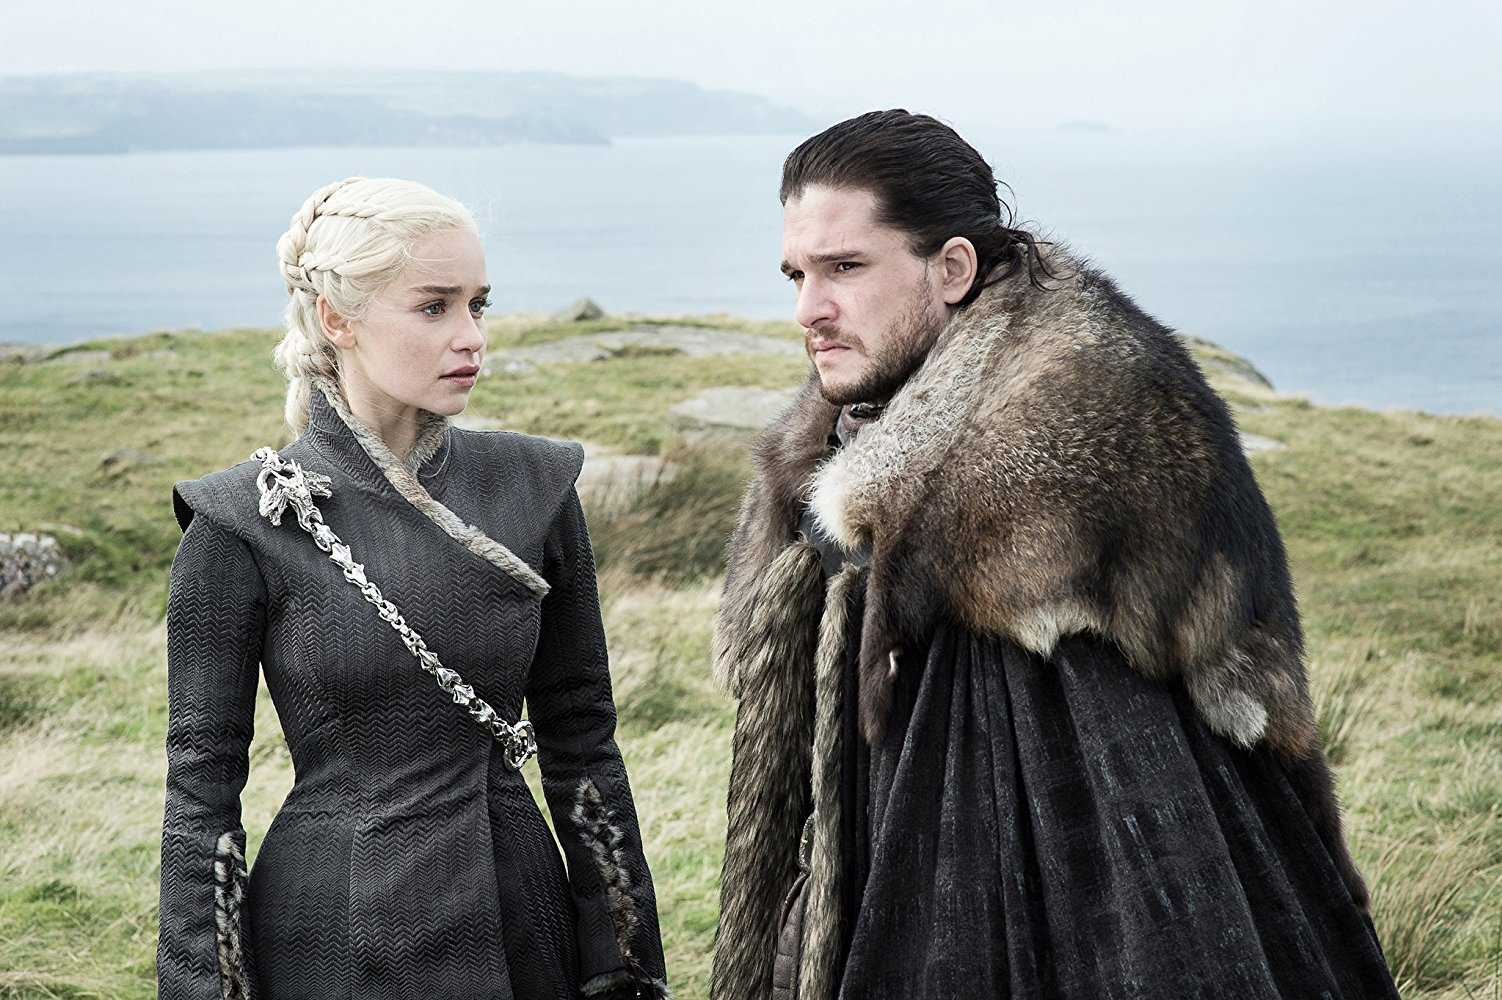 Kit Harington And Emilia Clarke Talk About Their Steamy Scene From GoT Season Finale | game of thrones